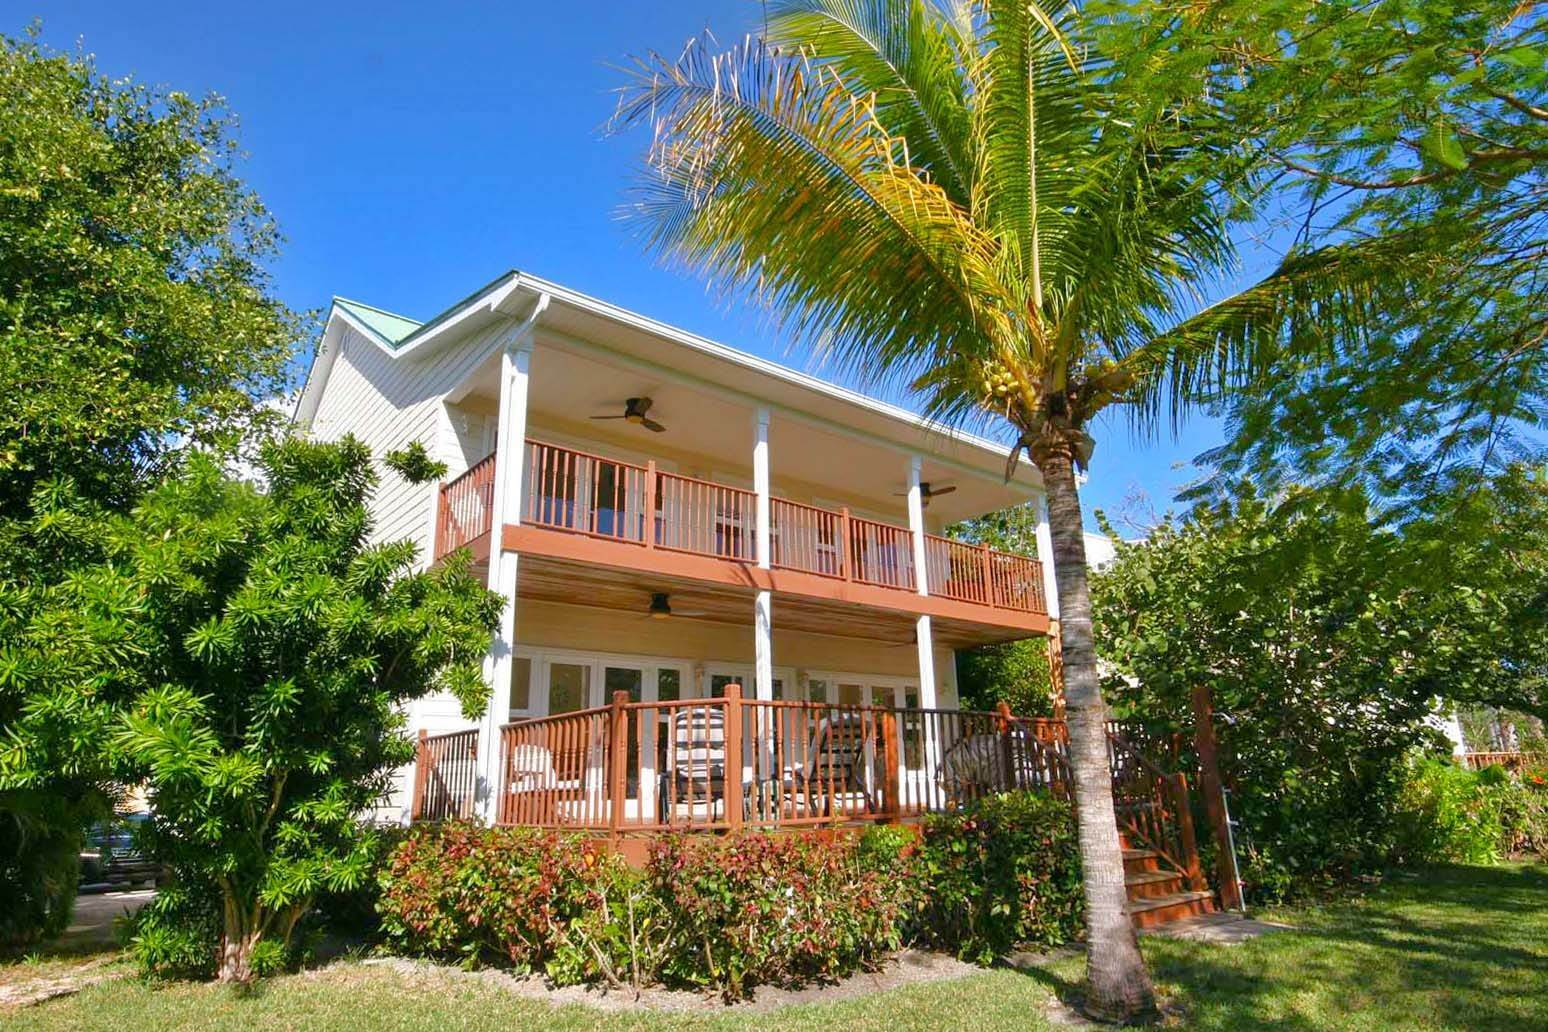 Single Family Homes for Rent at Gorgeous Customized 5 Bedroom Home in Gated Beachfront Community of Shoreline Shoreline, Lucaya, Freeport And Grand Bahama Bahamas